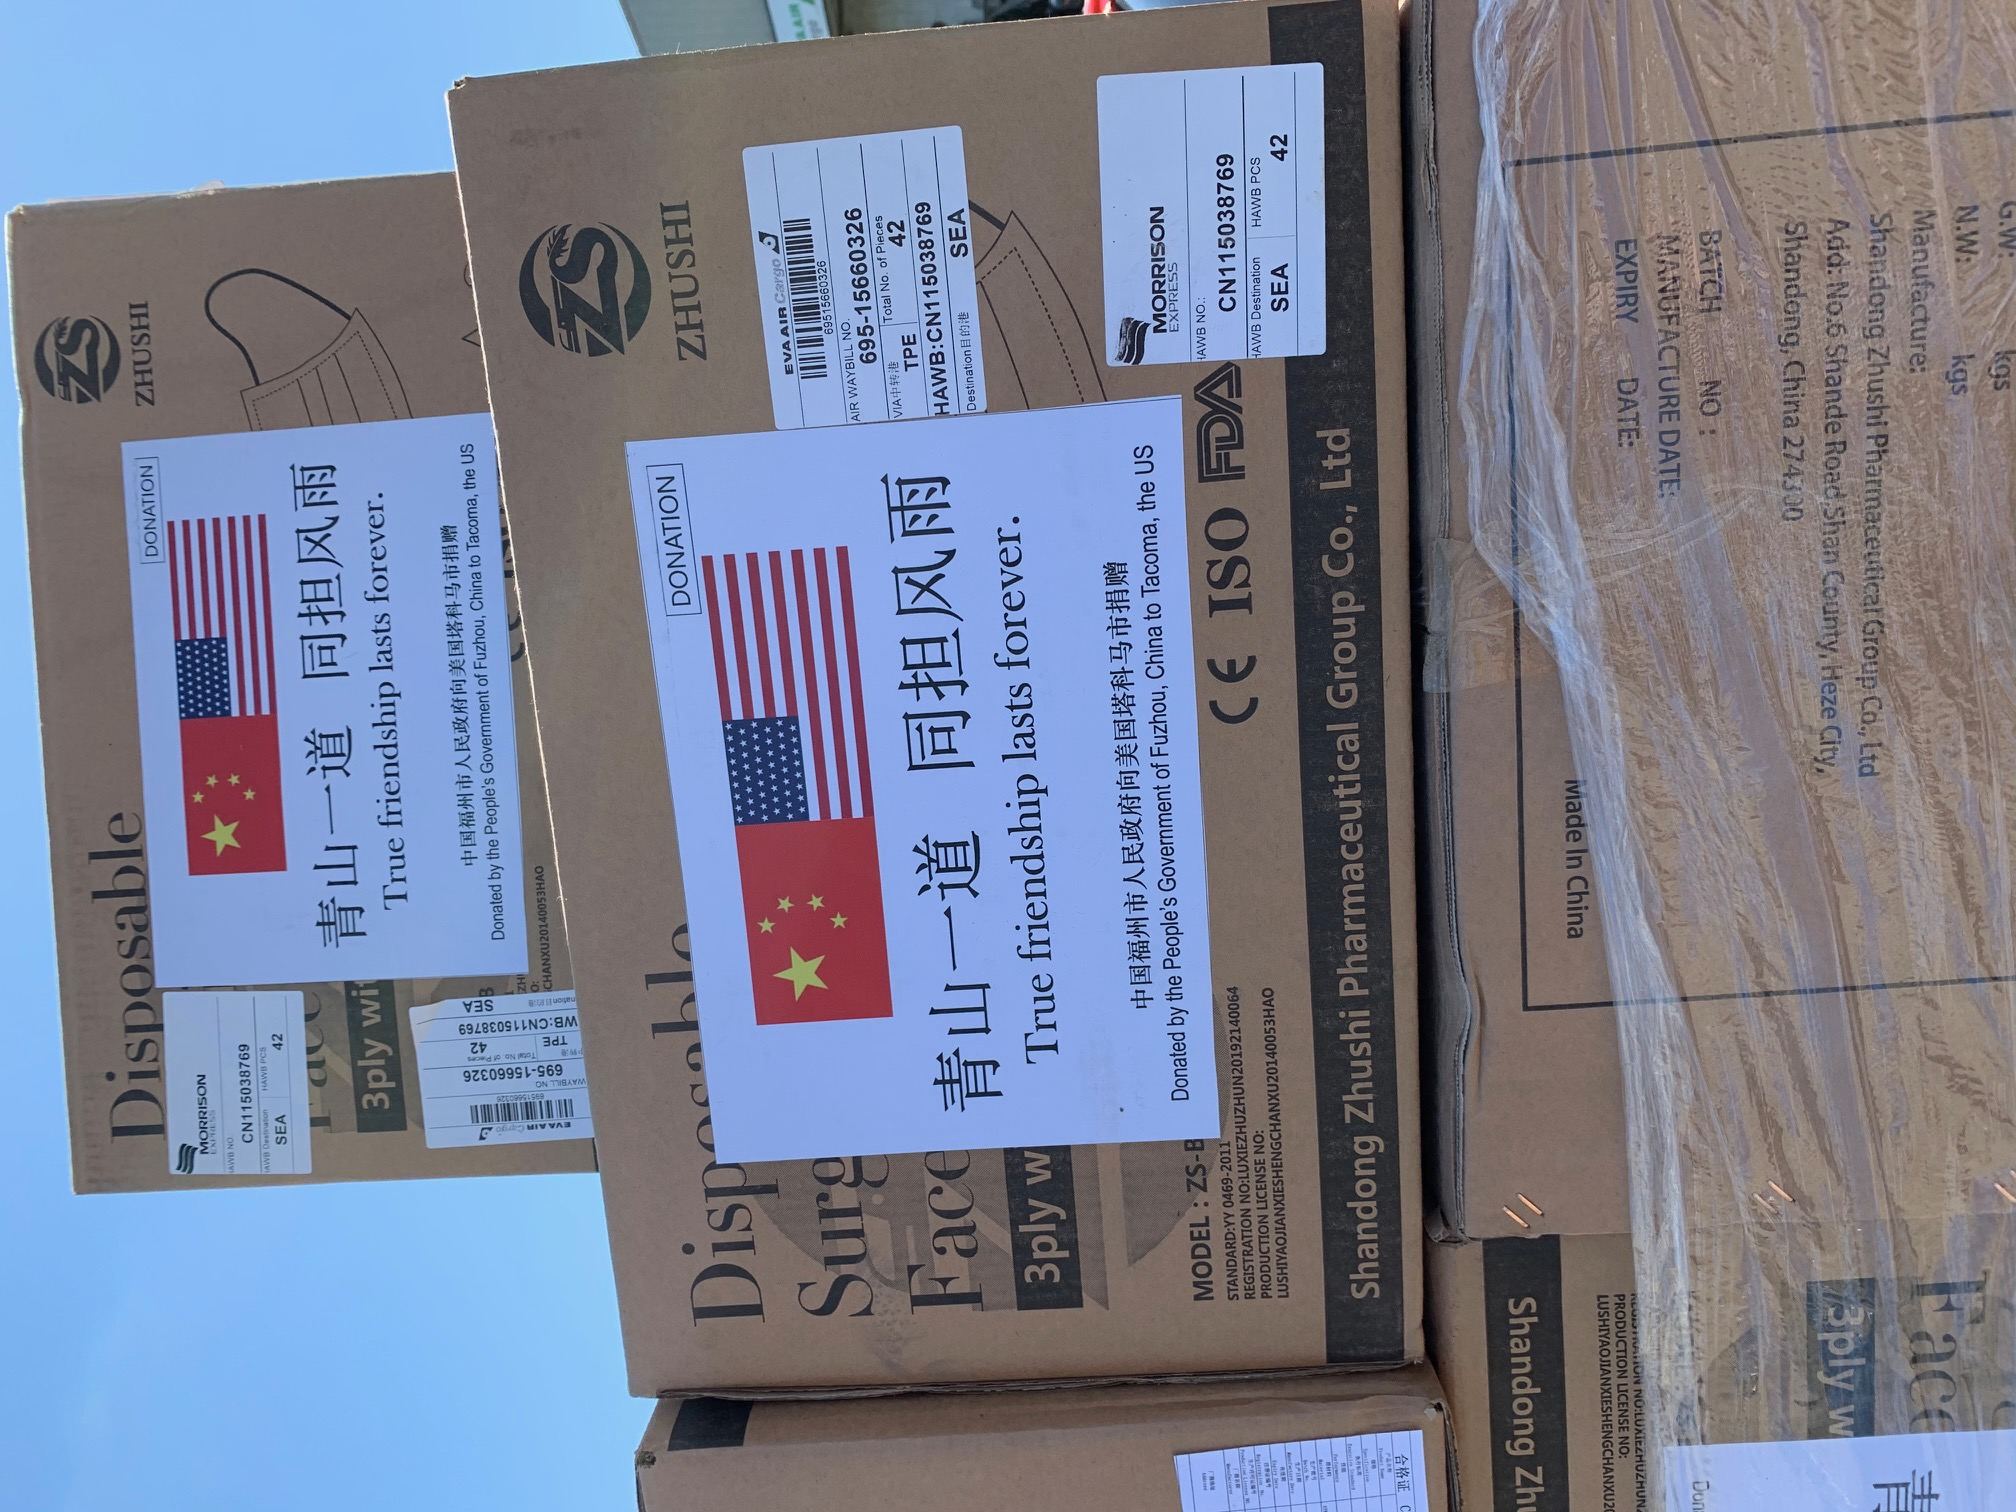 Fuzhou Donates Medical Supplies to Tacoma Image Courtesy City of Tacoma